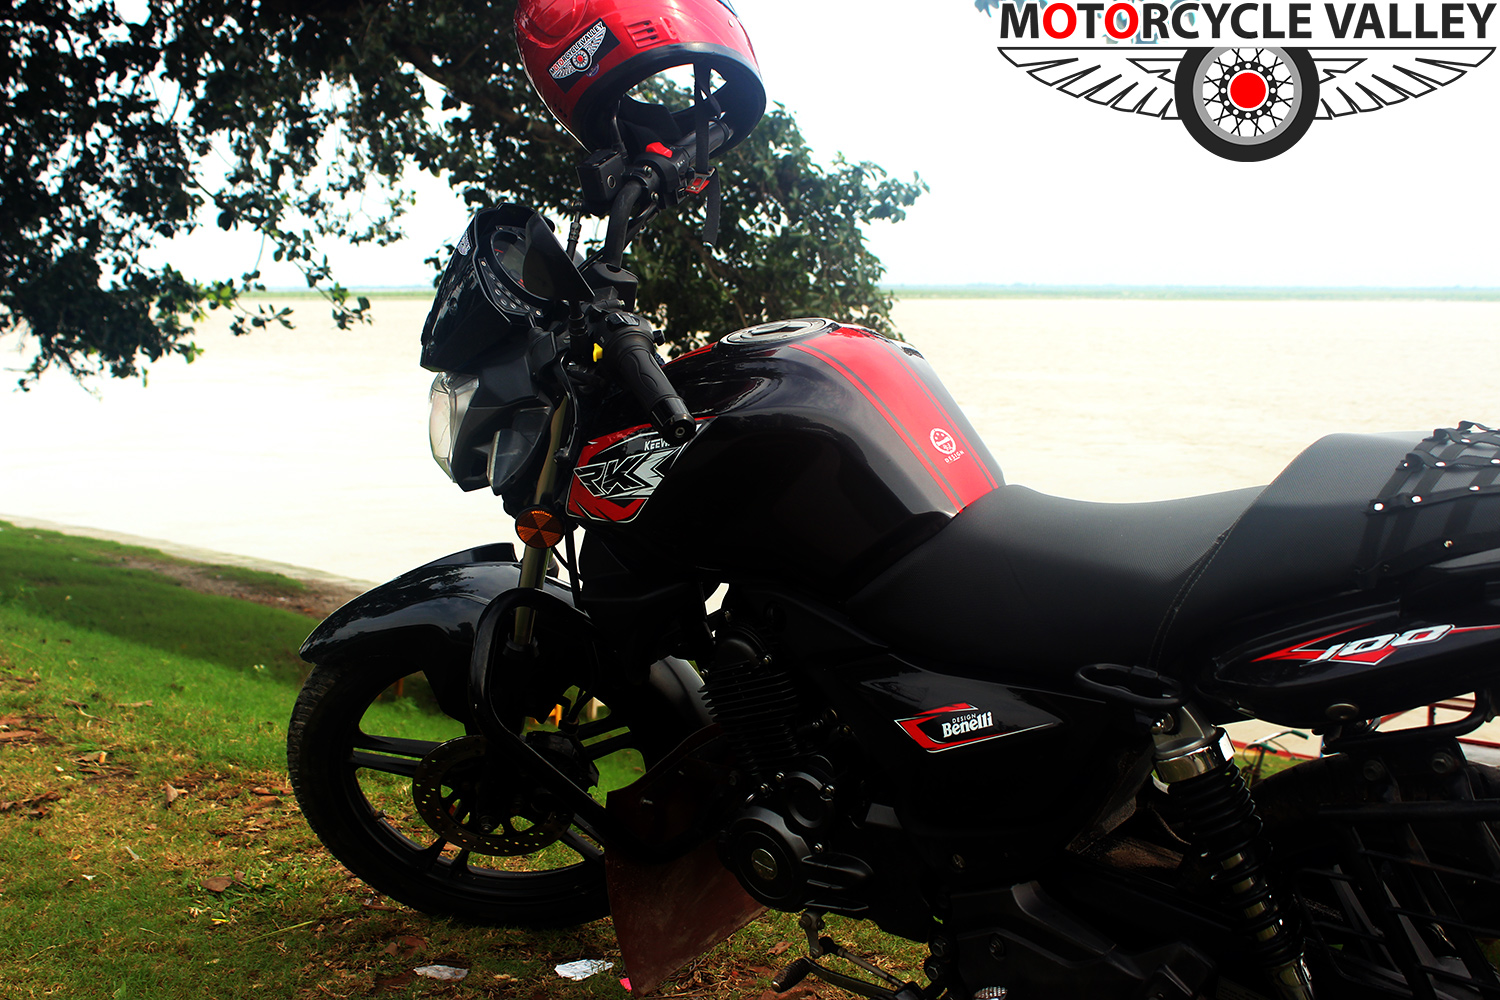 Keeway-RKS-100-Test-Ride-users-review